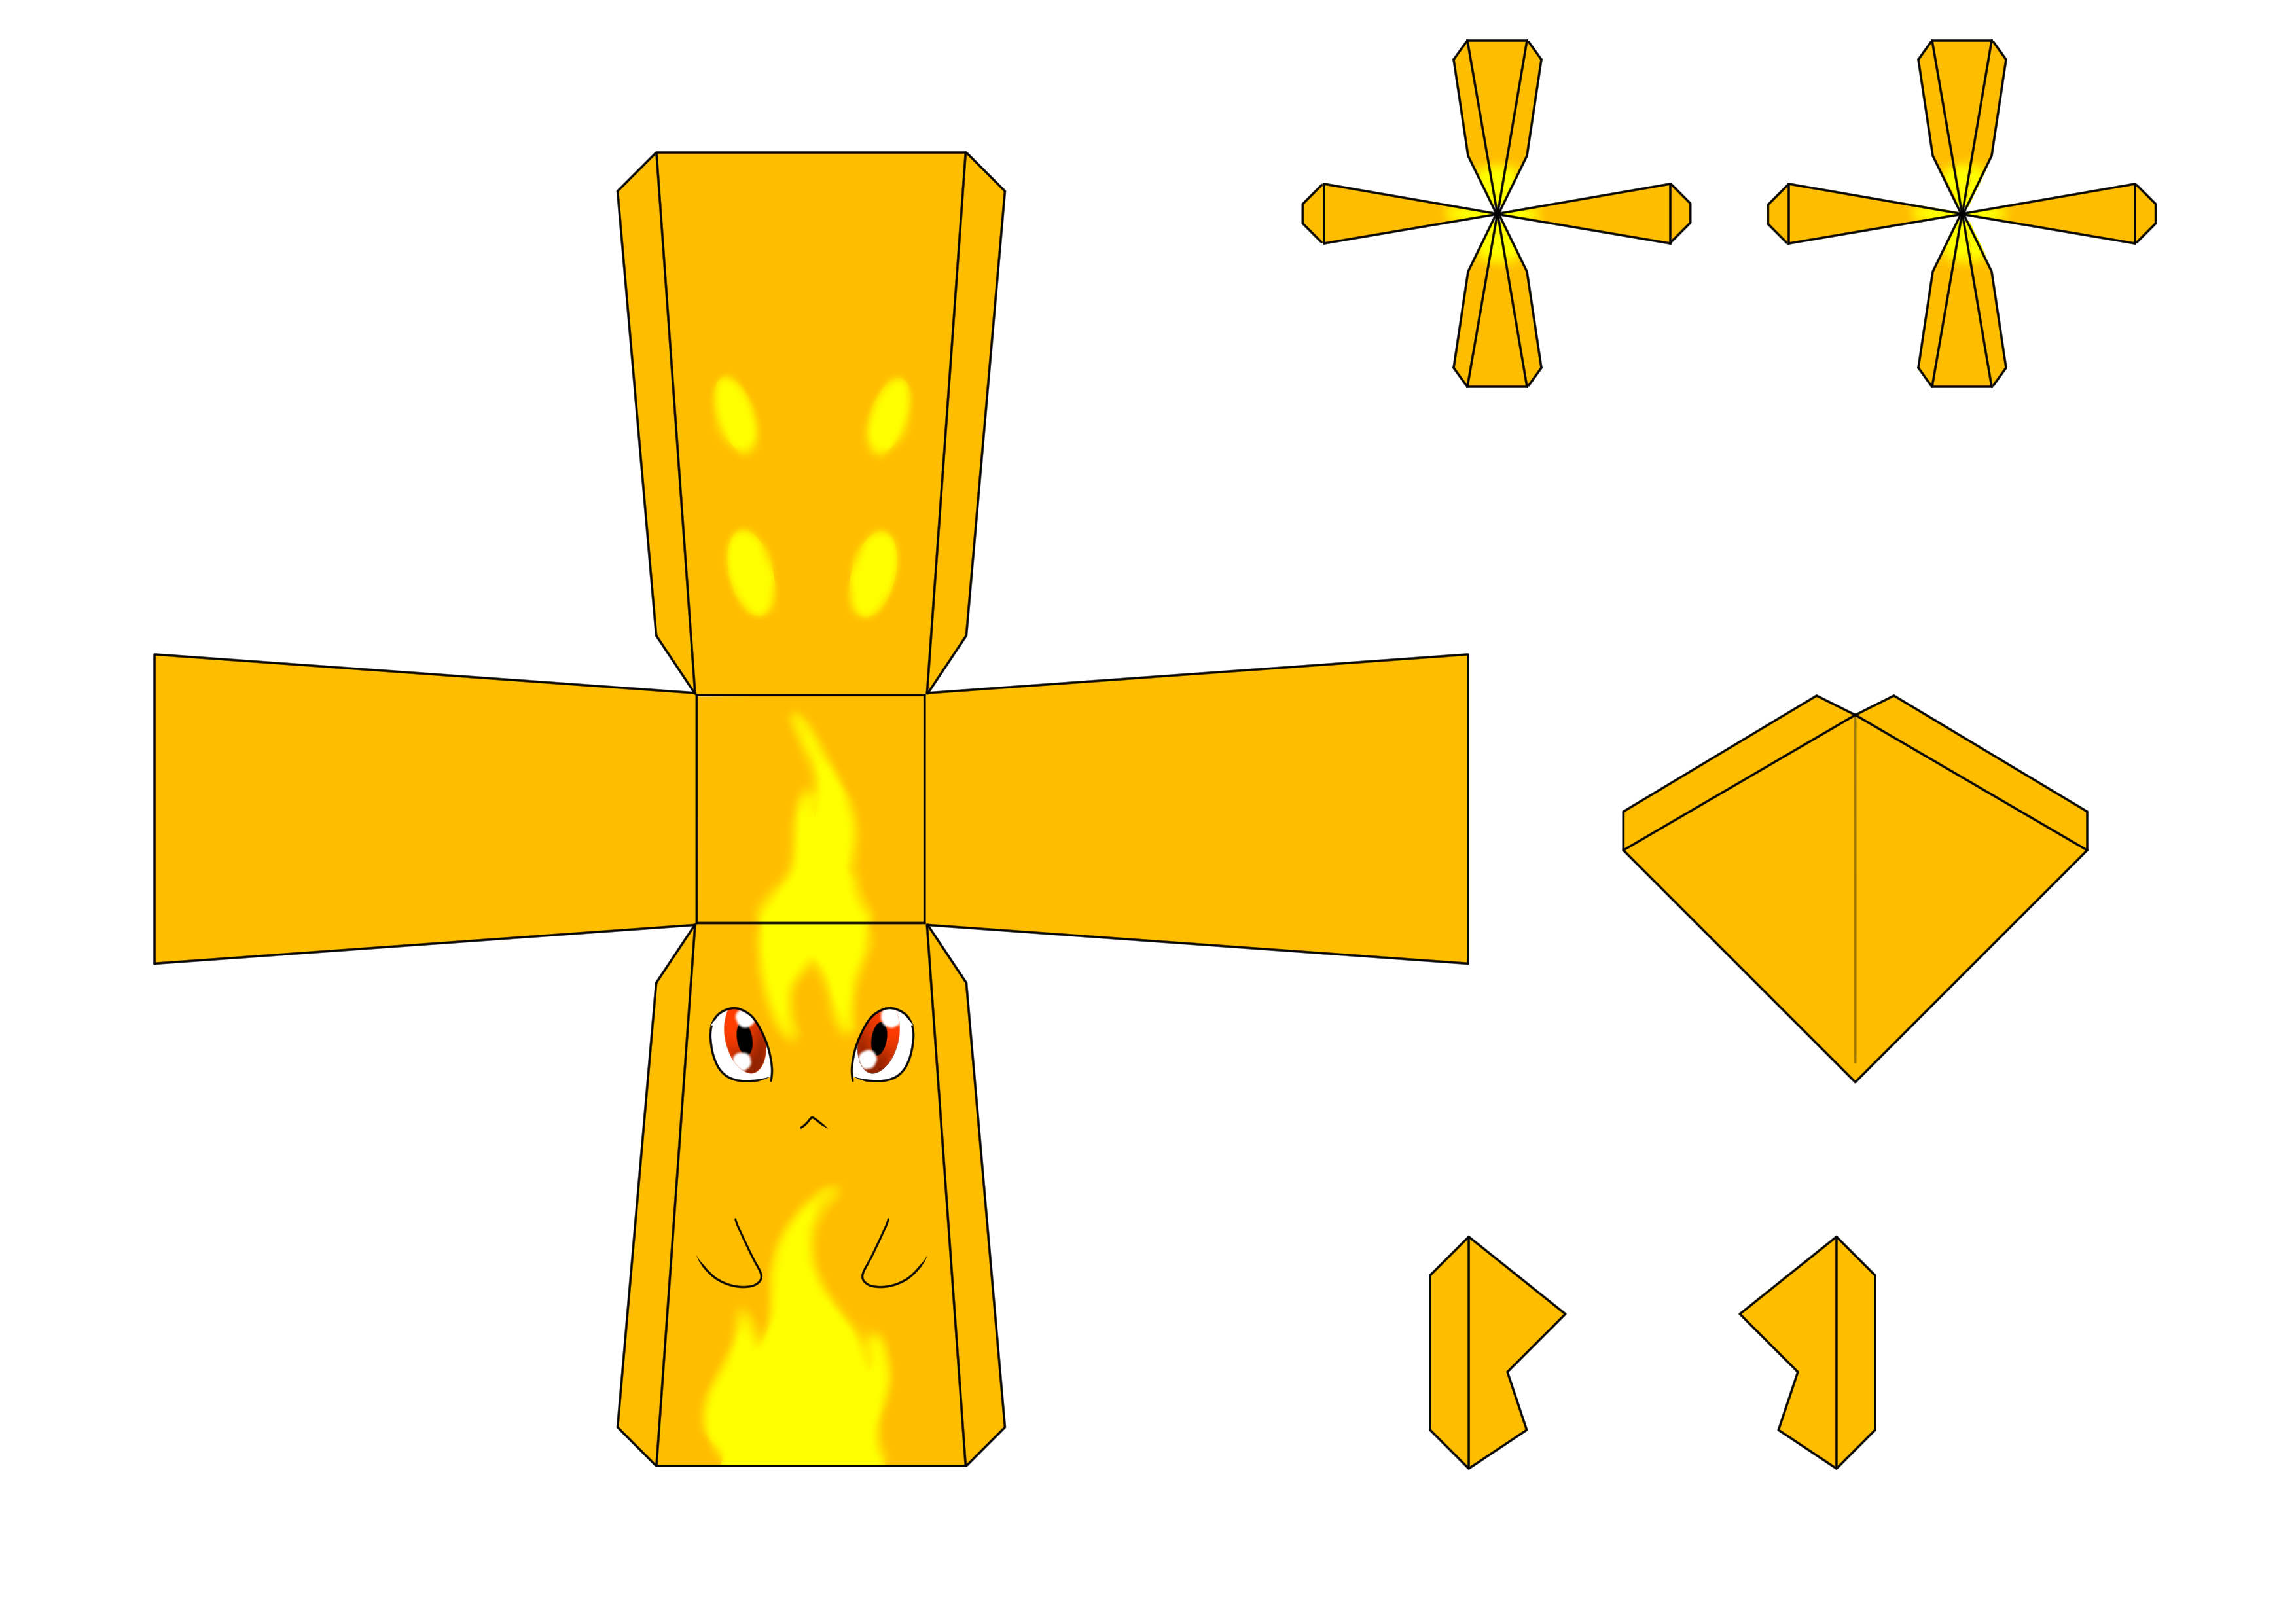 Burpy Papercraft Template By Drazugan On DeviantArt